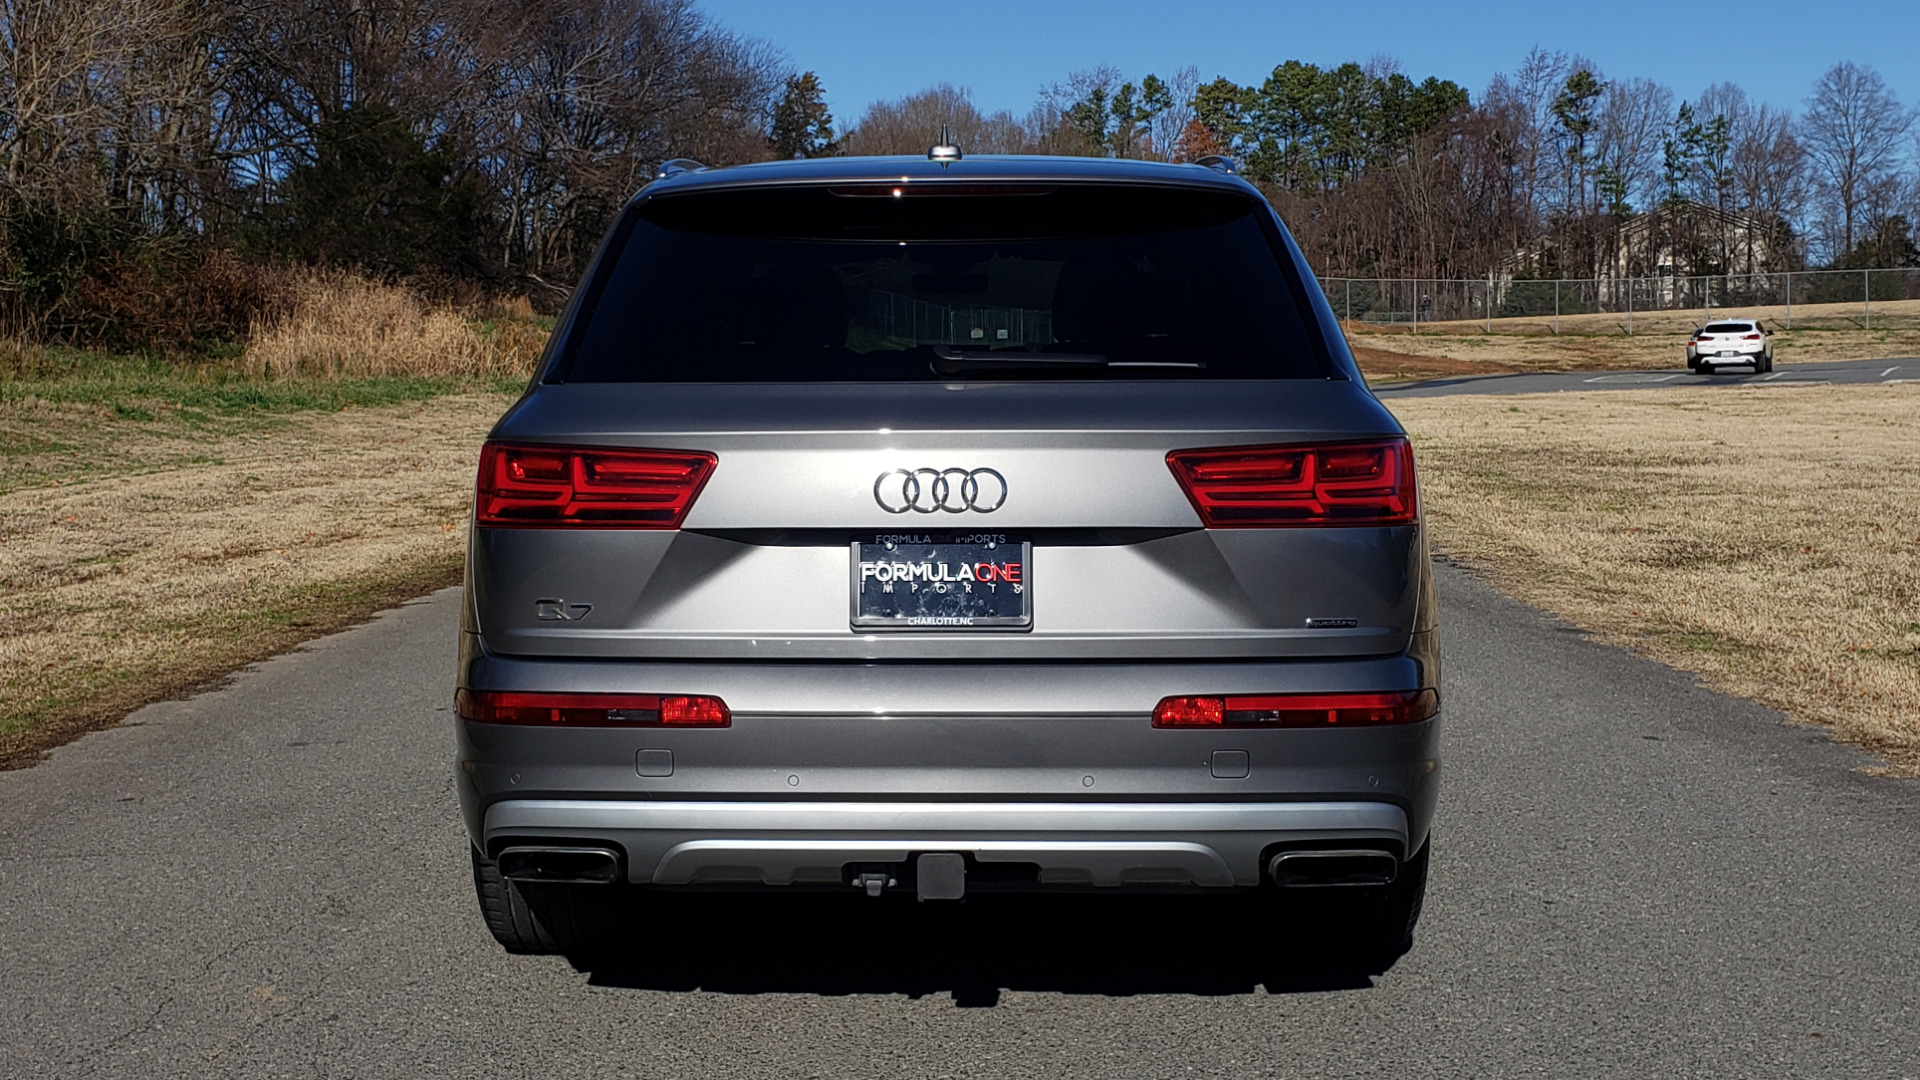 Used 2017 Audi Q7 PREMIUM PLUS / 2.0T TIPTRONIC / NAV / PANO-ROOF / 3-ROW / REARVIEW for sale $33,999 at Formula Imports in Charlotte NC 28227 24